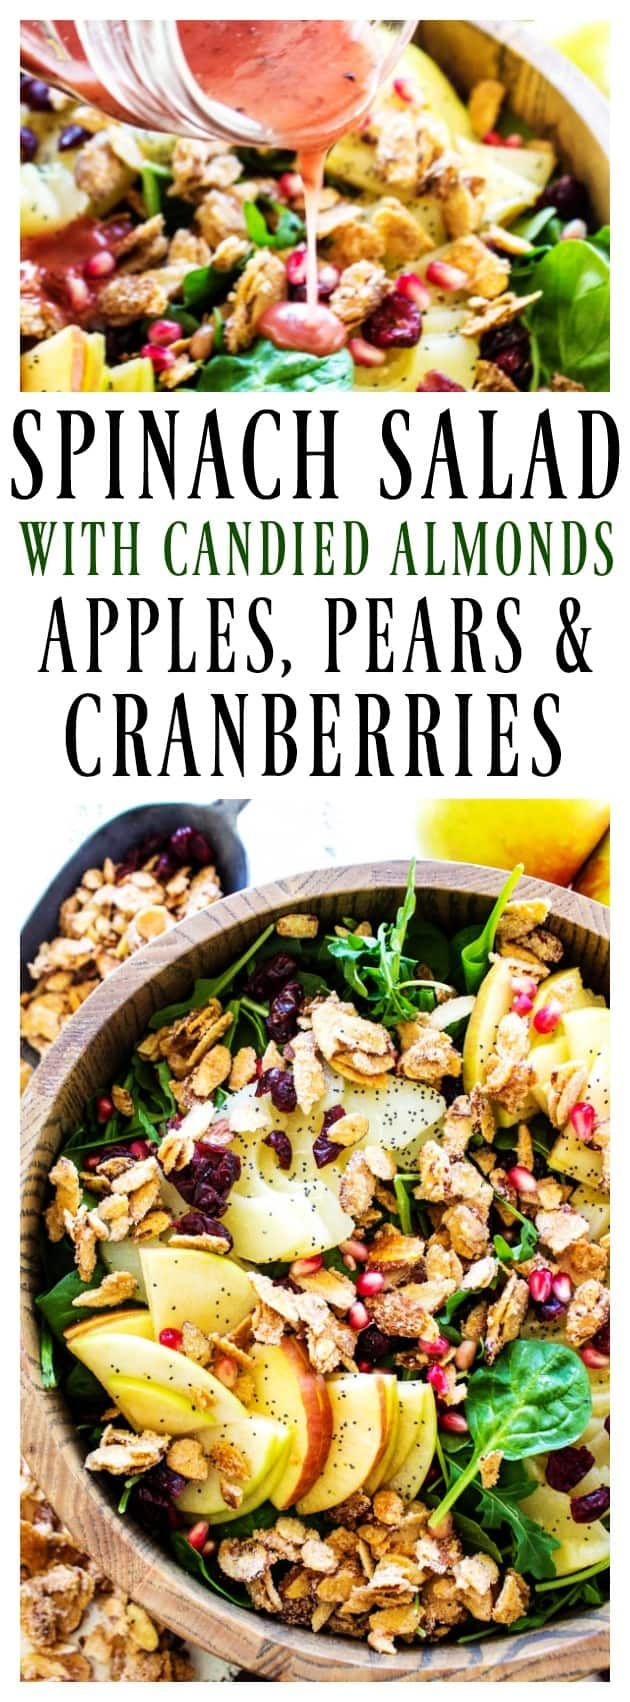 SPINACH SALAD WITH APPLES, PEARS, CRANBERRIES & CANDIED ALMONDS - A Dash of Sanity